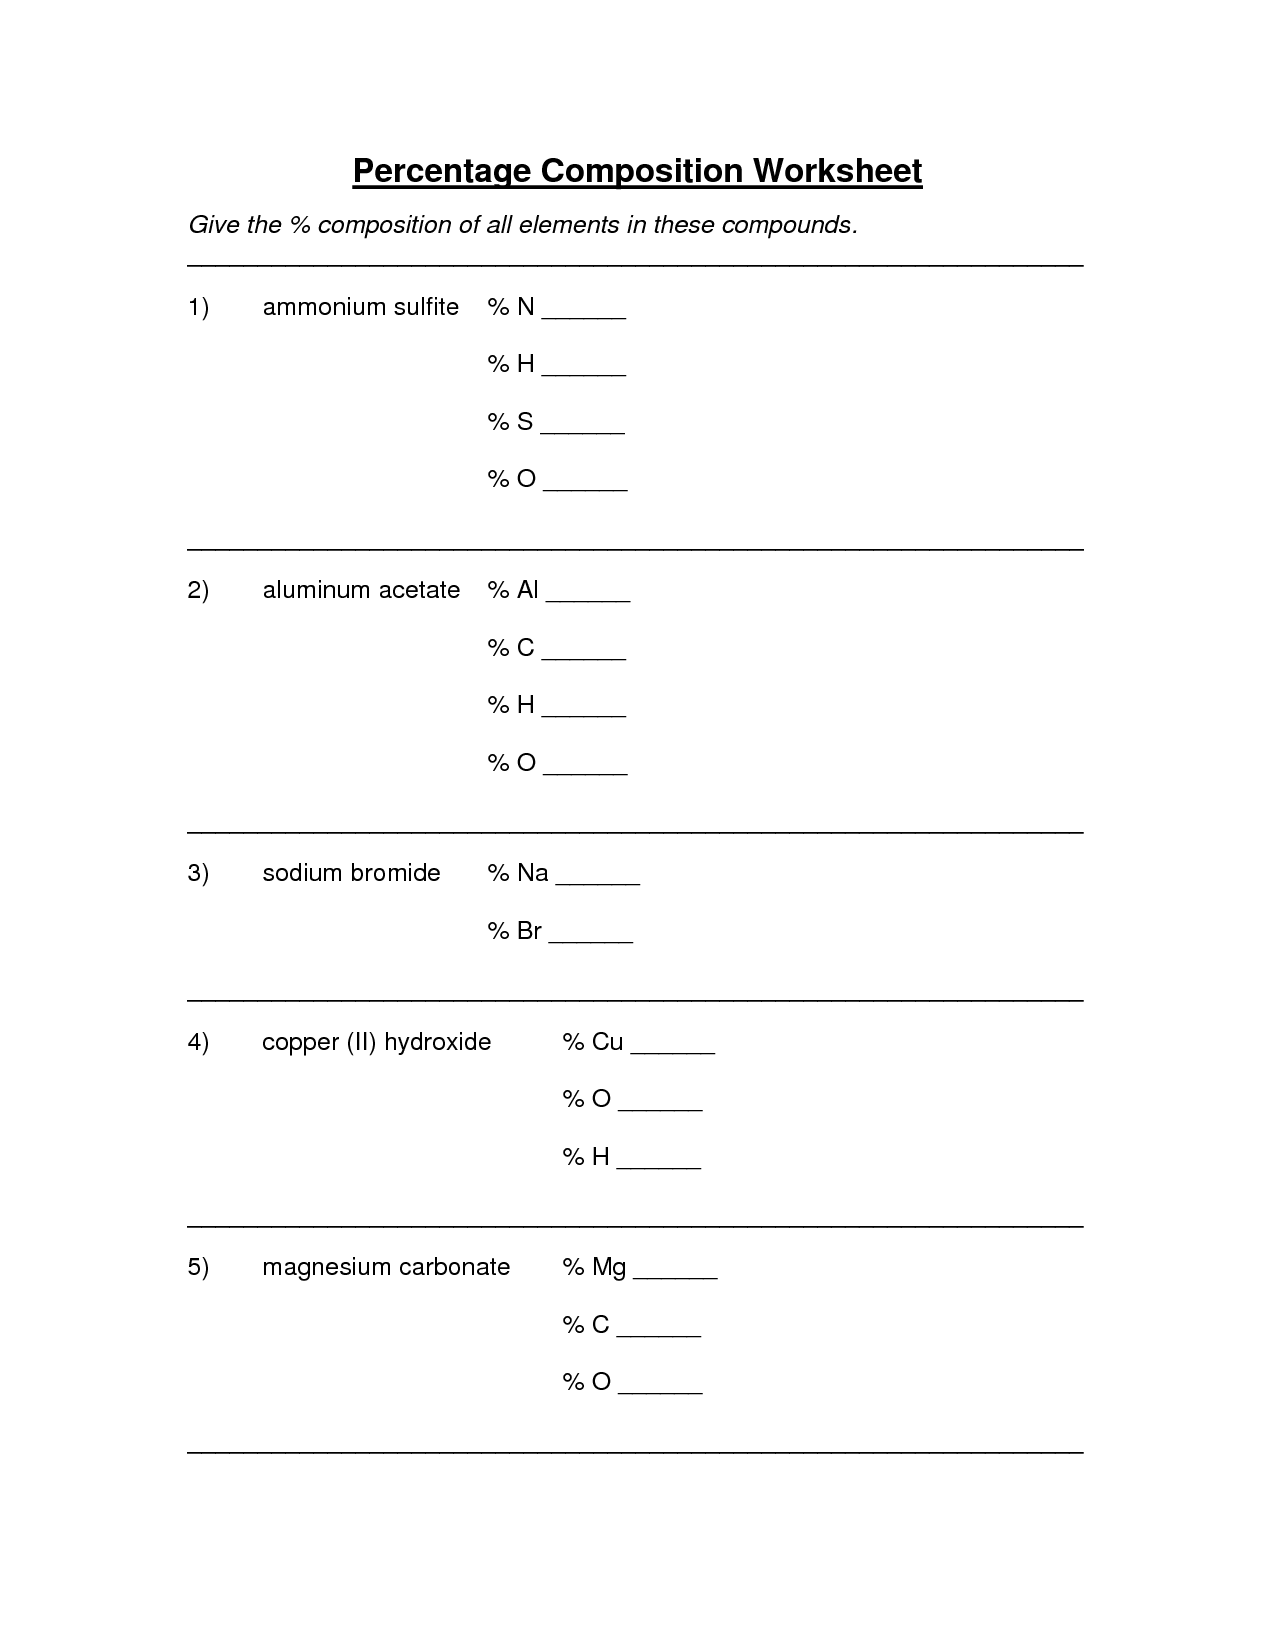 Percent Composition Worksheet Answer Key